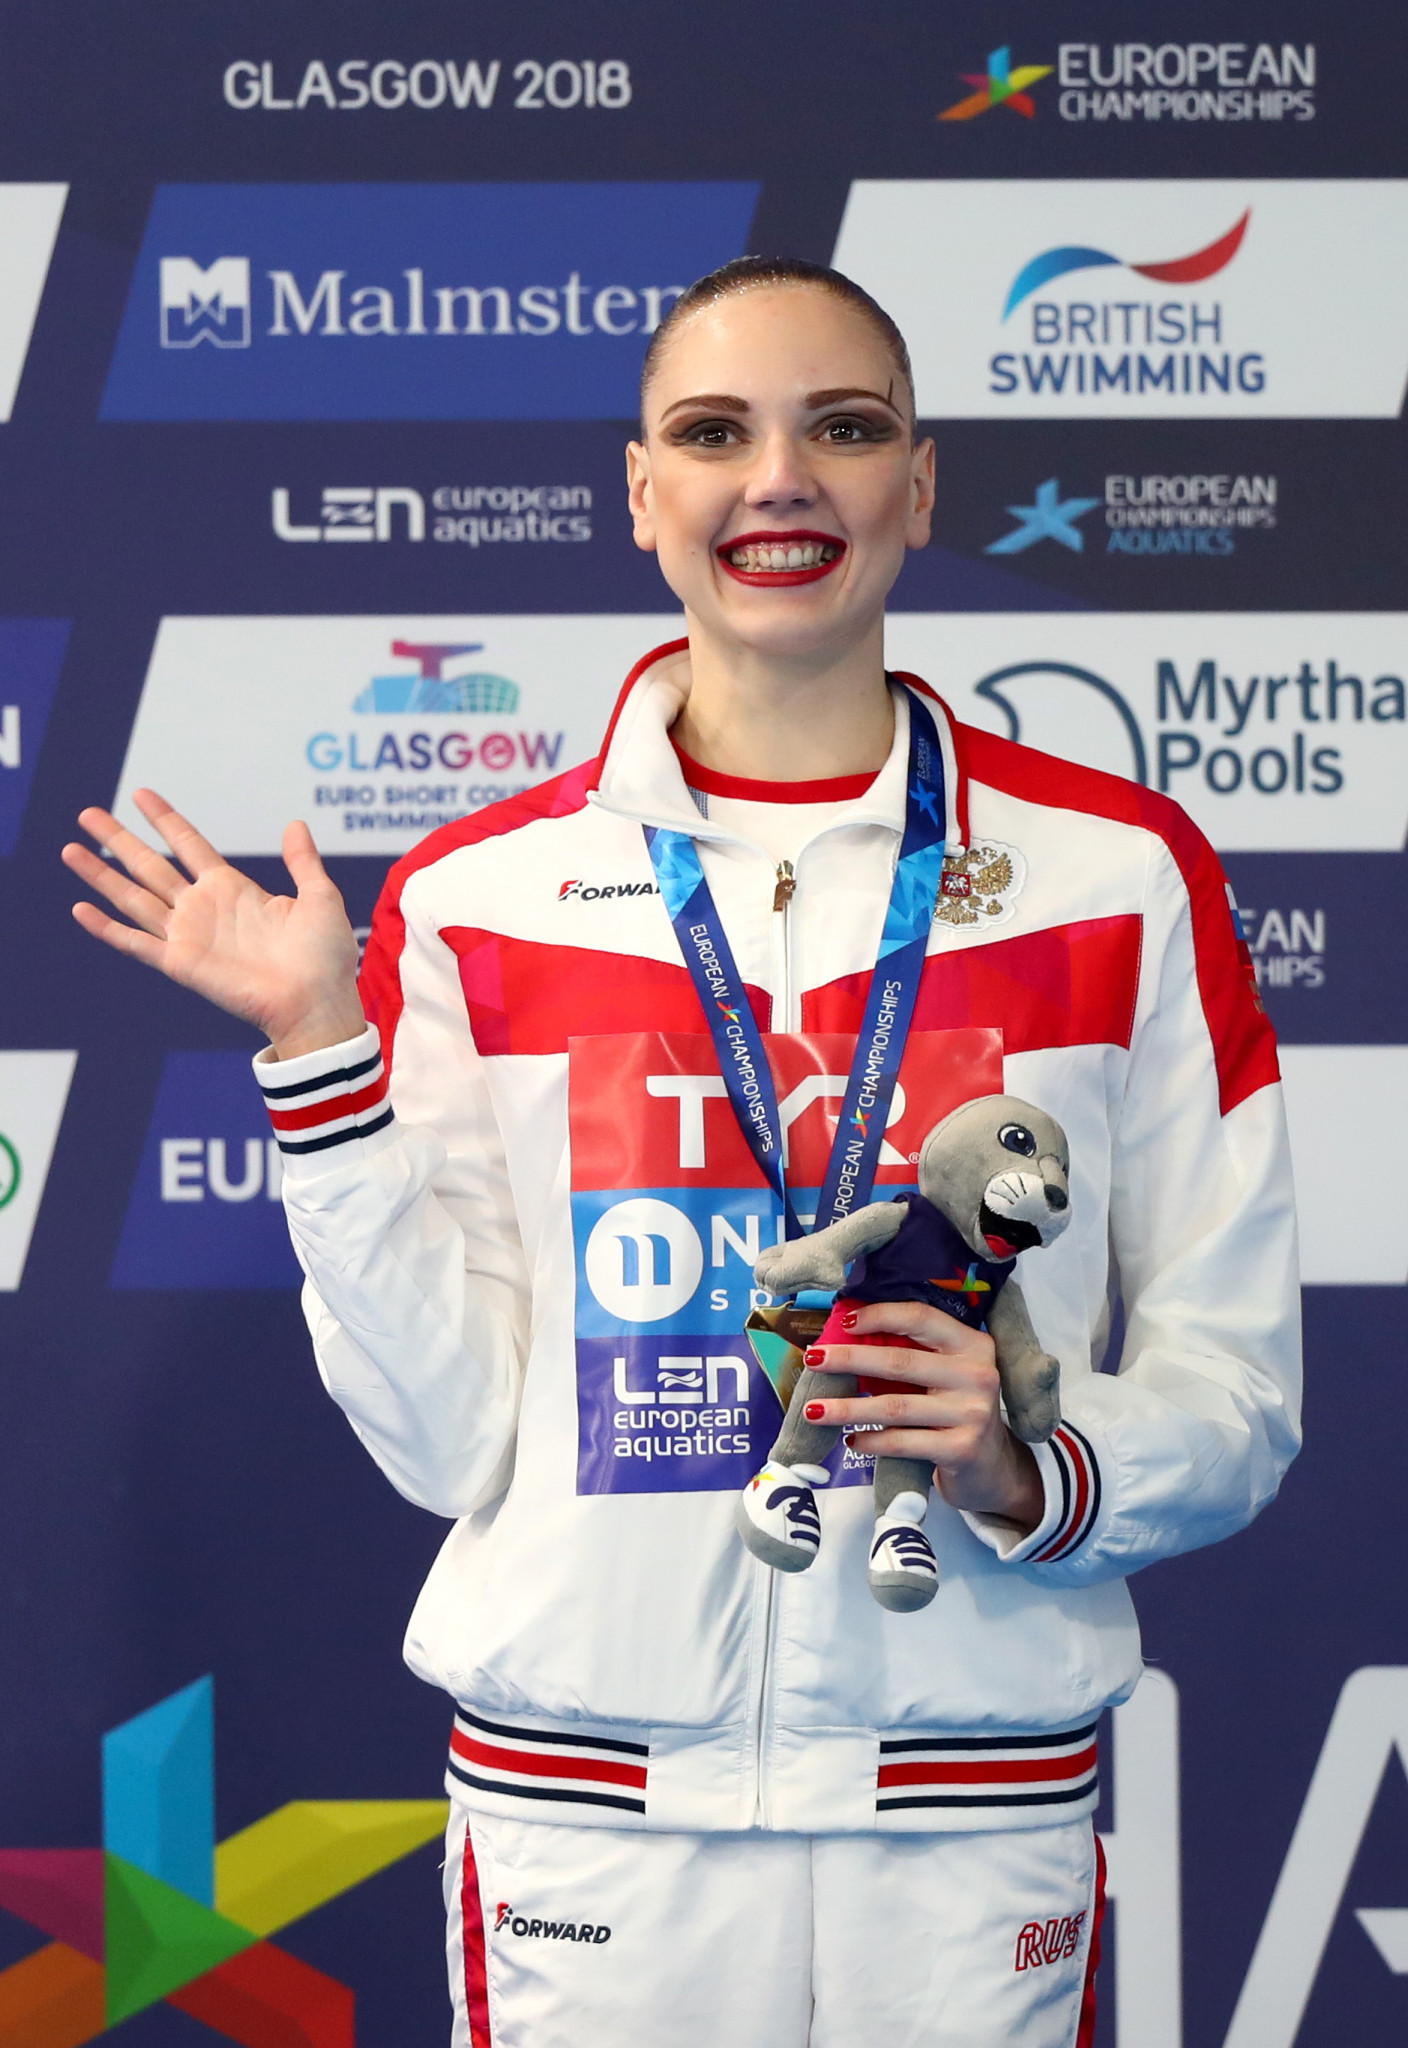 Svetlana Kolesnichenko won her third and fourth golds of the European Championships today, in the duet free and solo free finals ©Getty Images